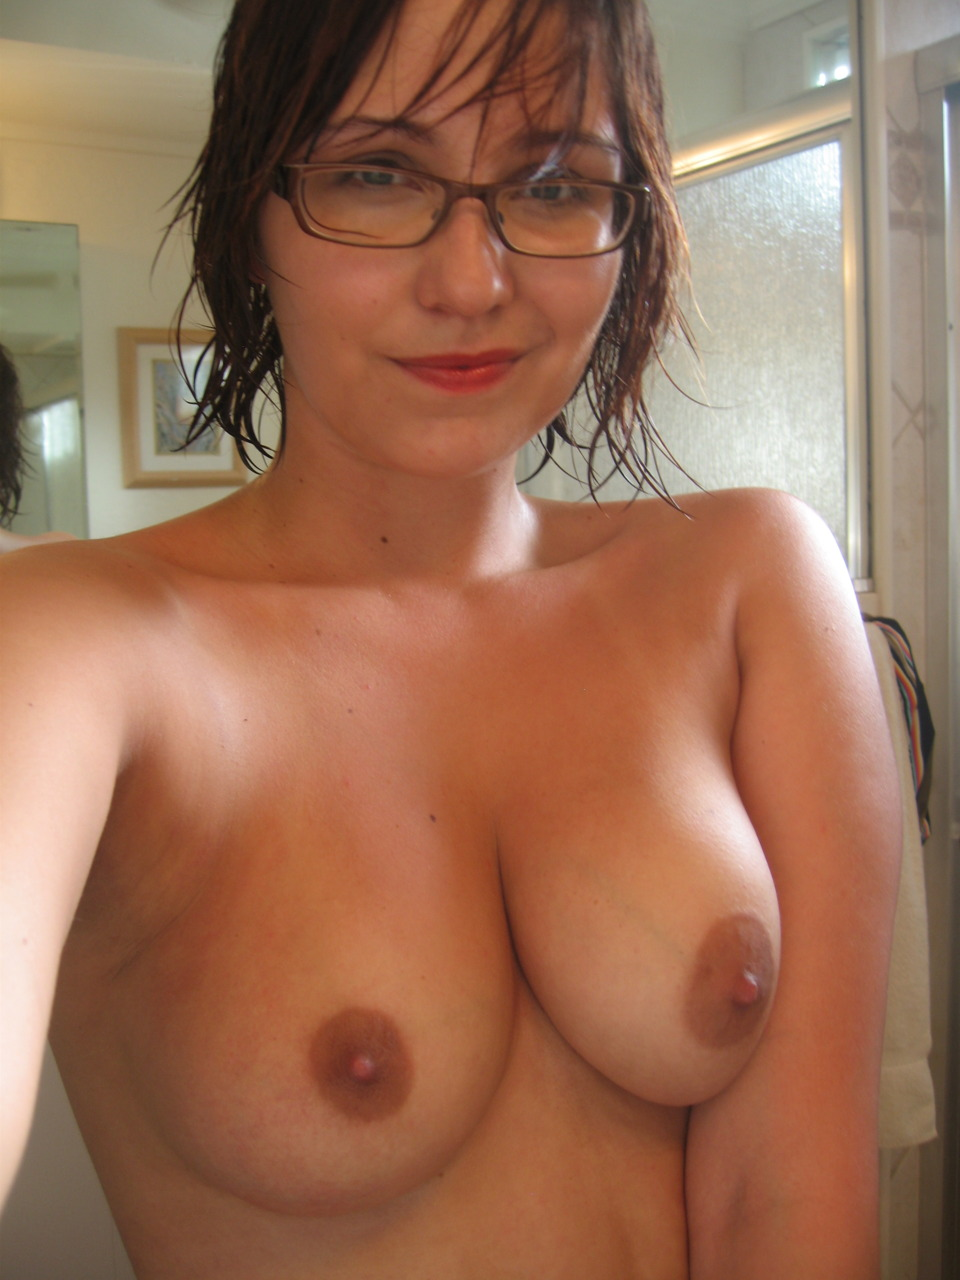 Good Girl with nerd glasses tits